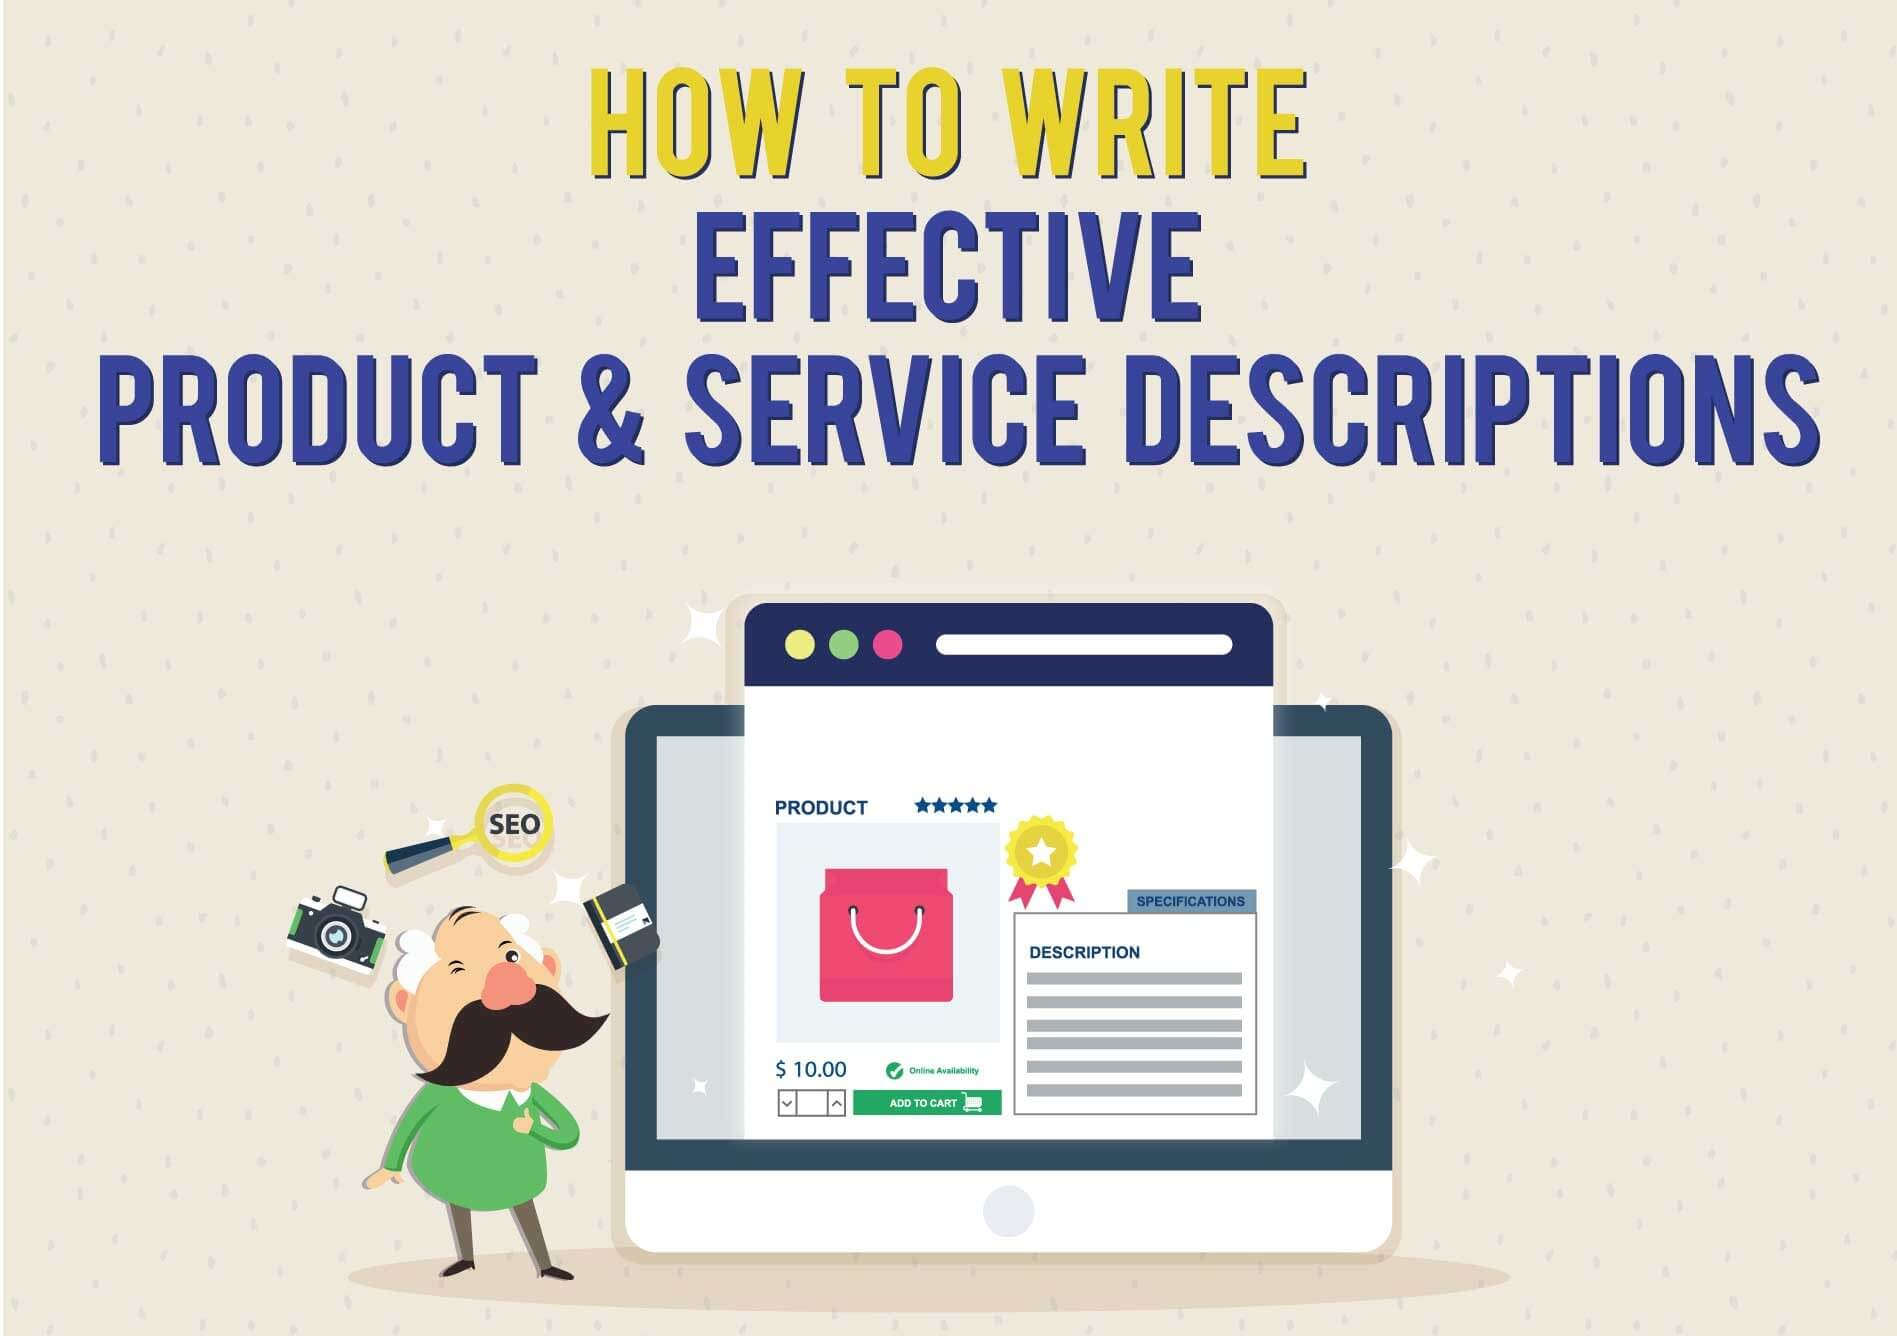 How to write effective product and service descriptions